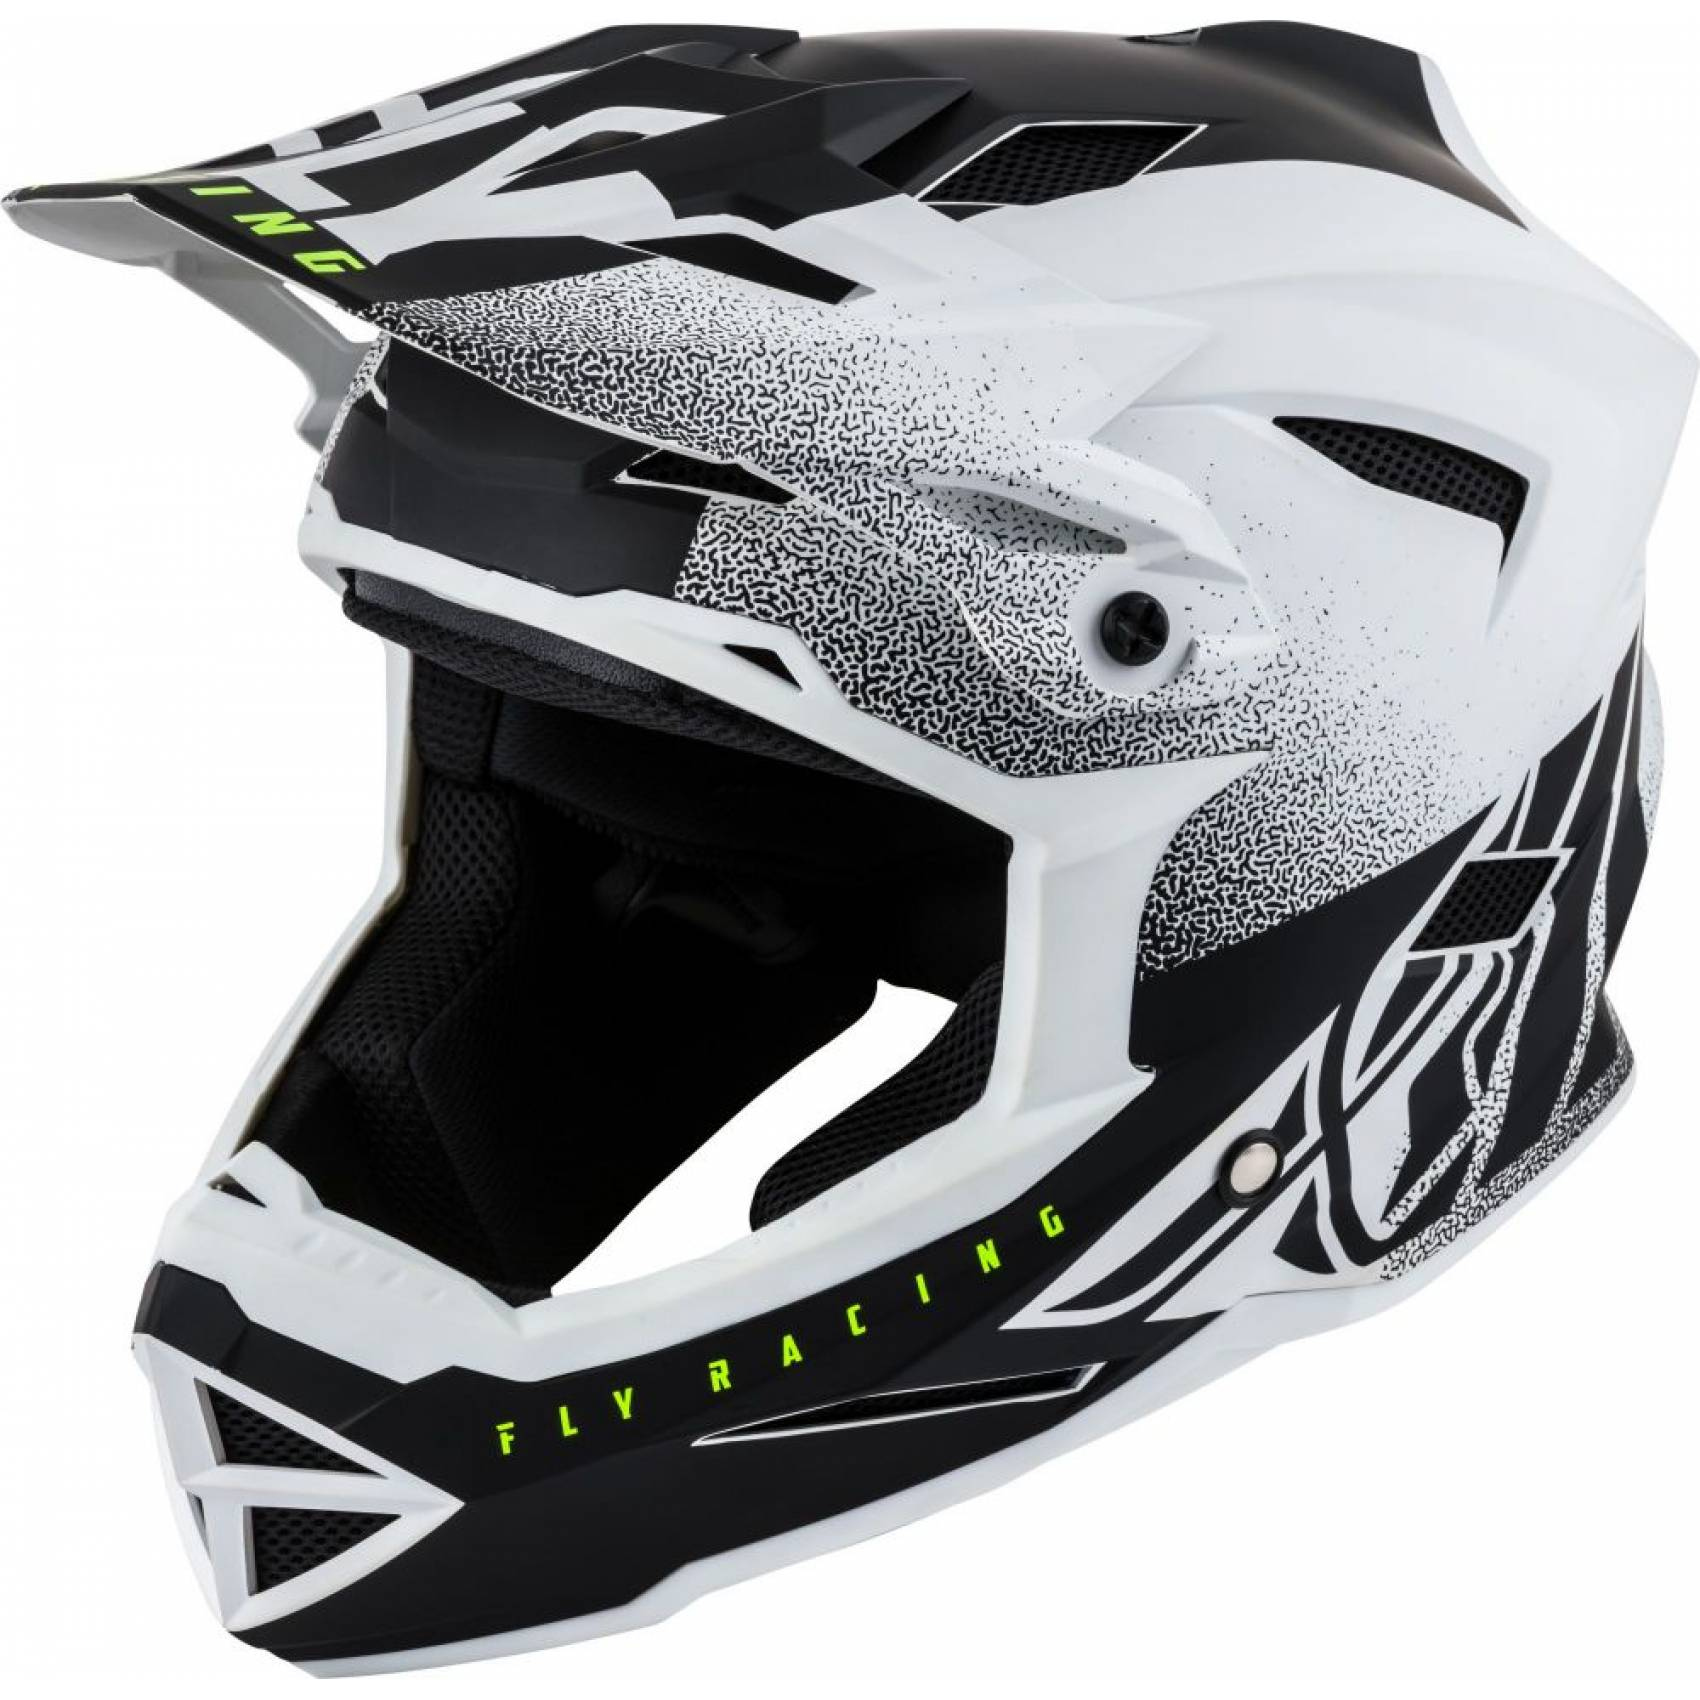 CASQUE BMX DH ENFANT FLY DEFAULT BLANC MAT RACING YS 47 YM 49 YL